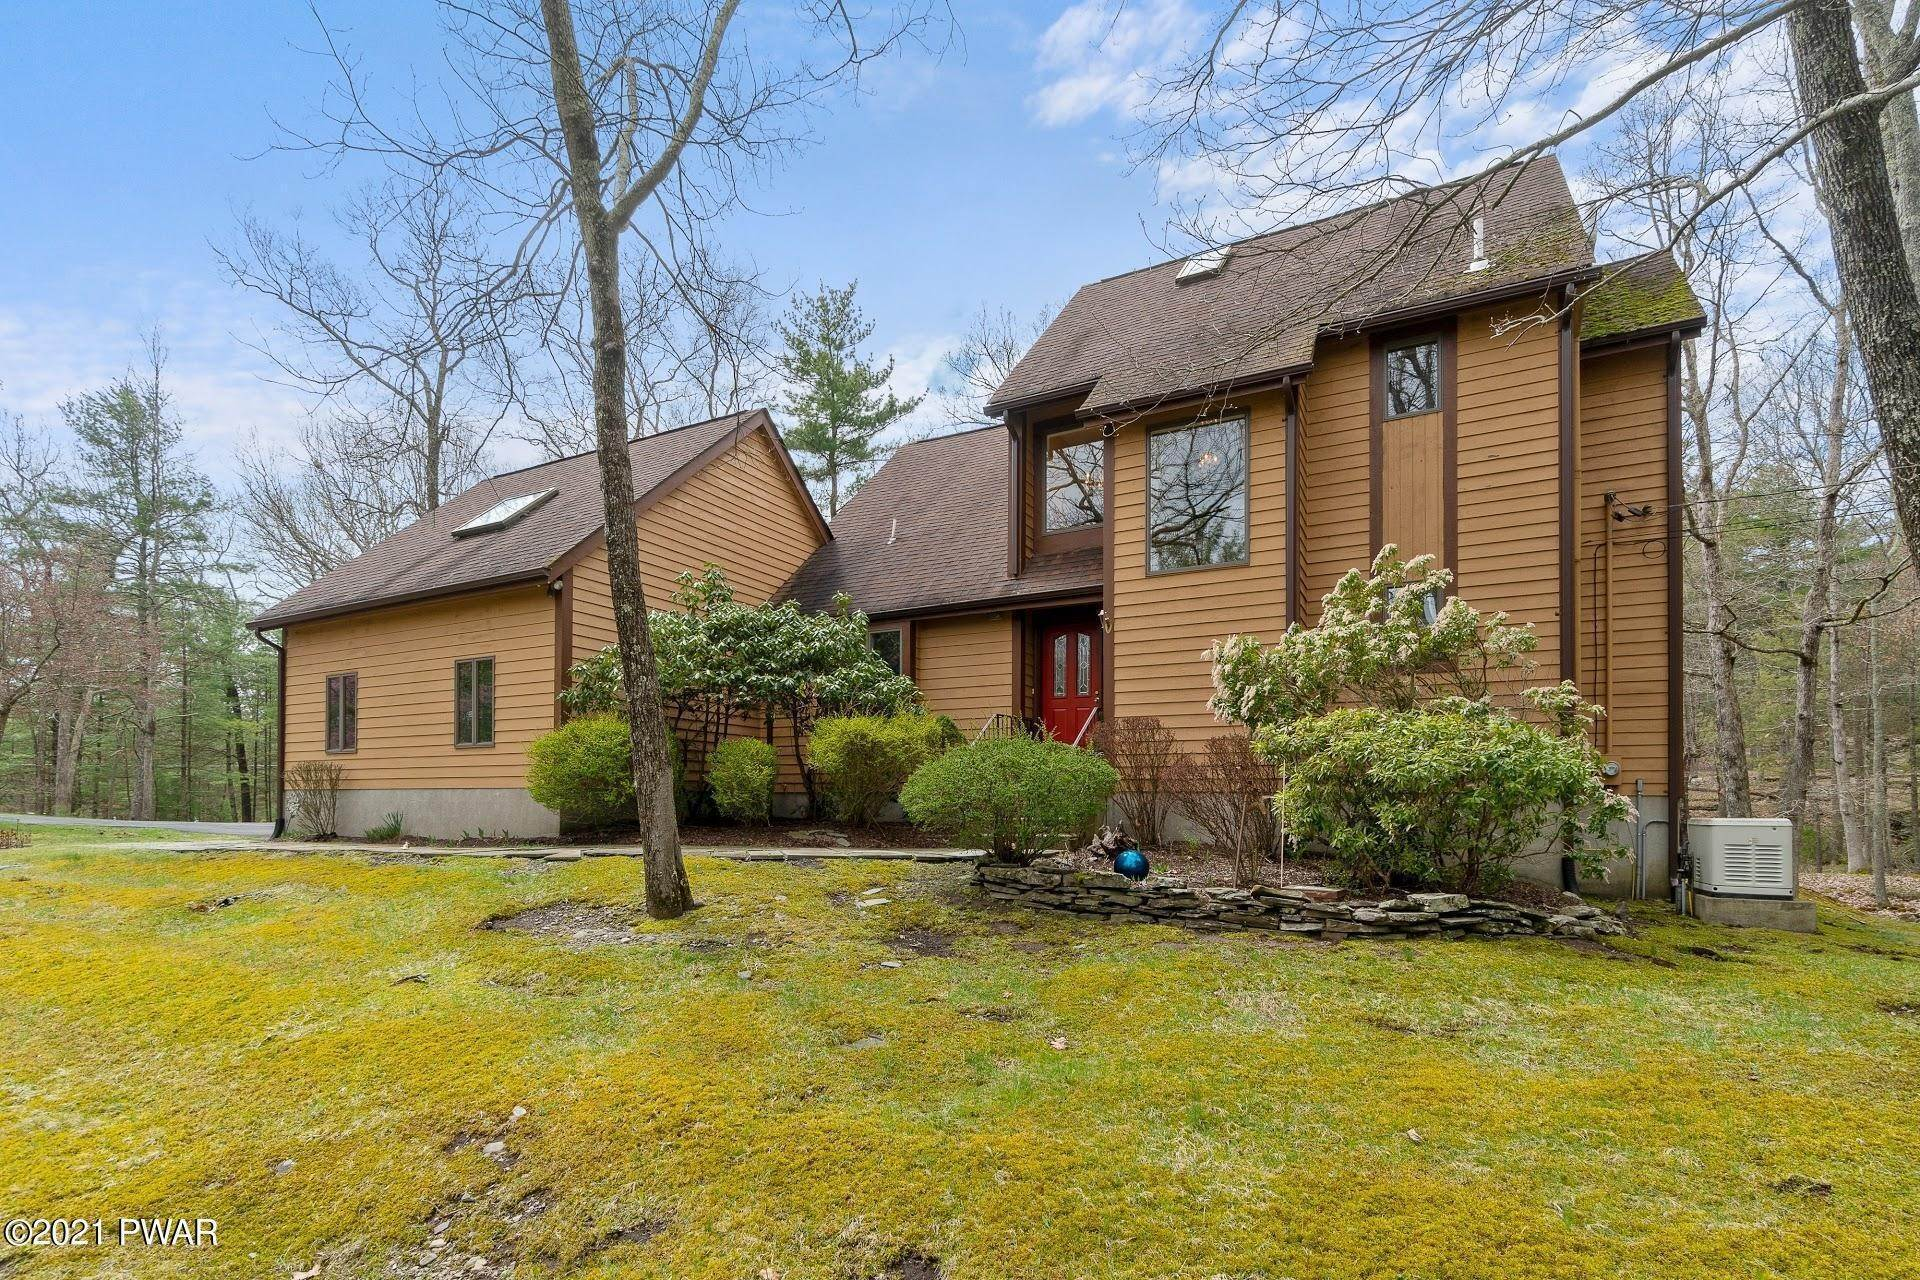 2. Single Family Homes for Sale at 103 Vesuvius Ln Milford, Pennsylvania 18337 United States